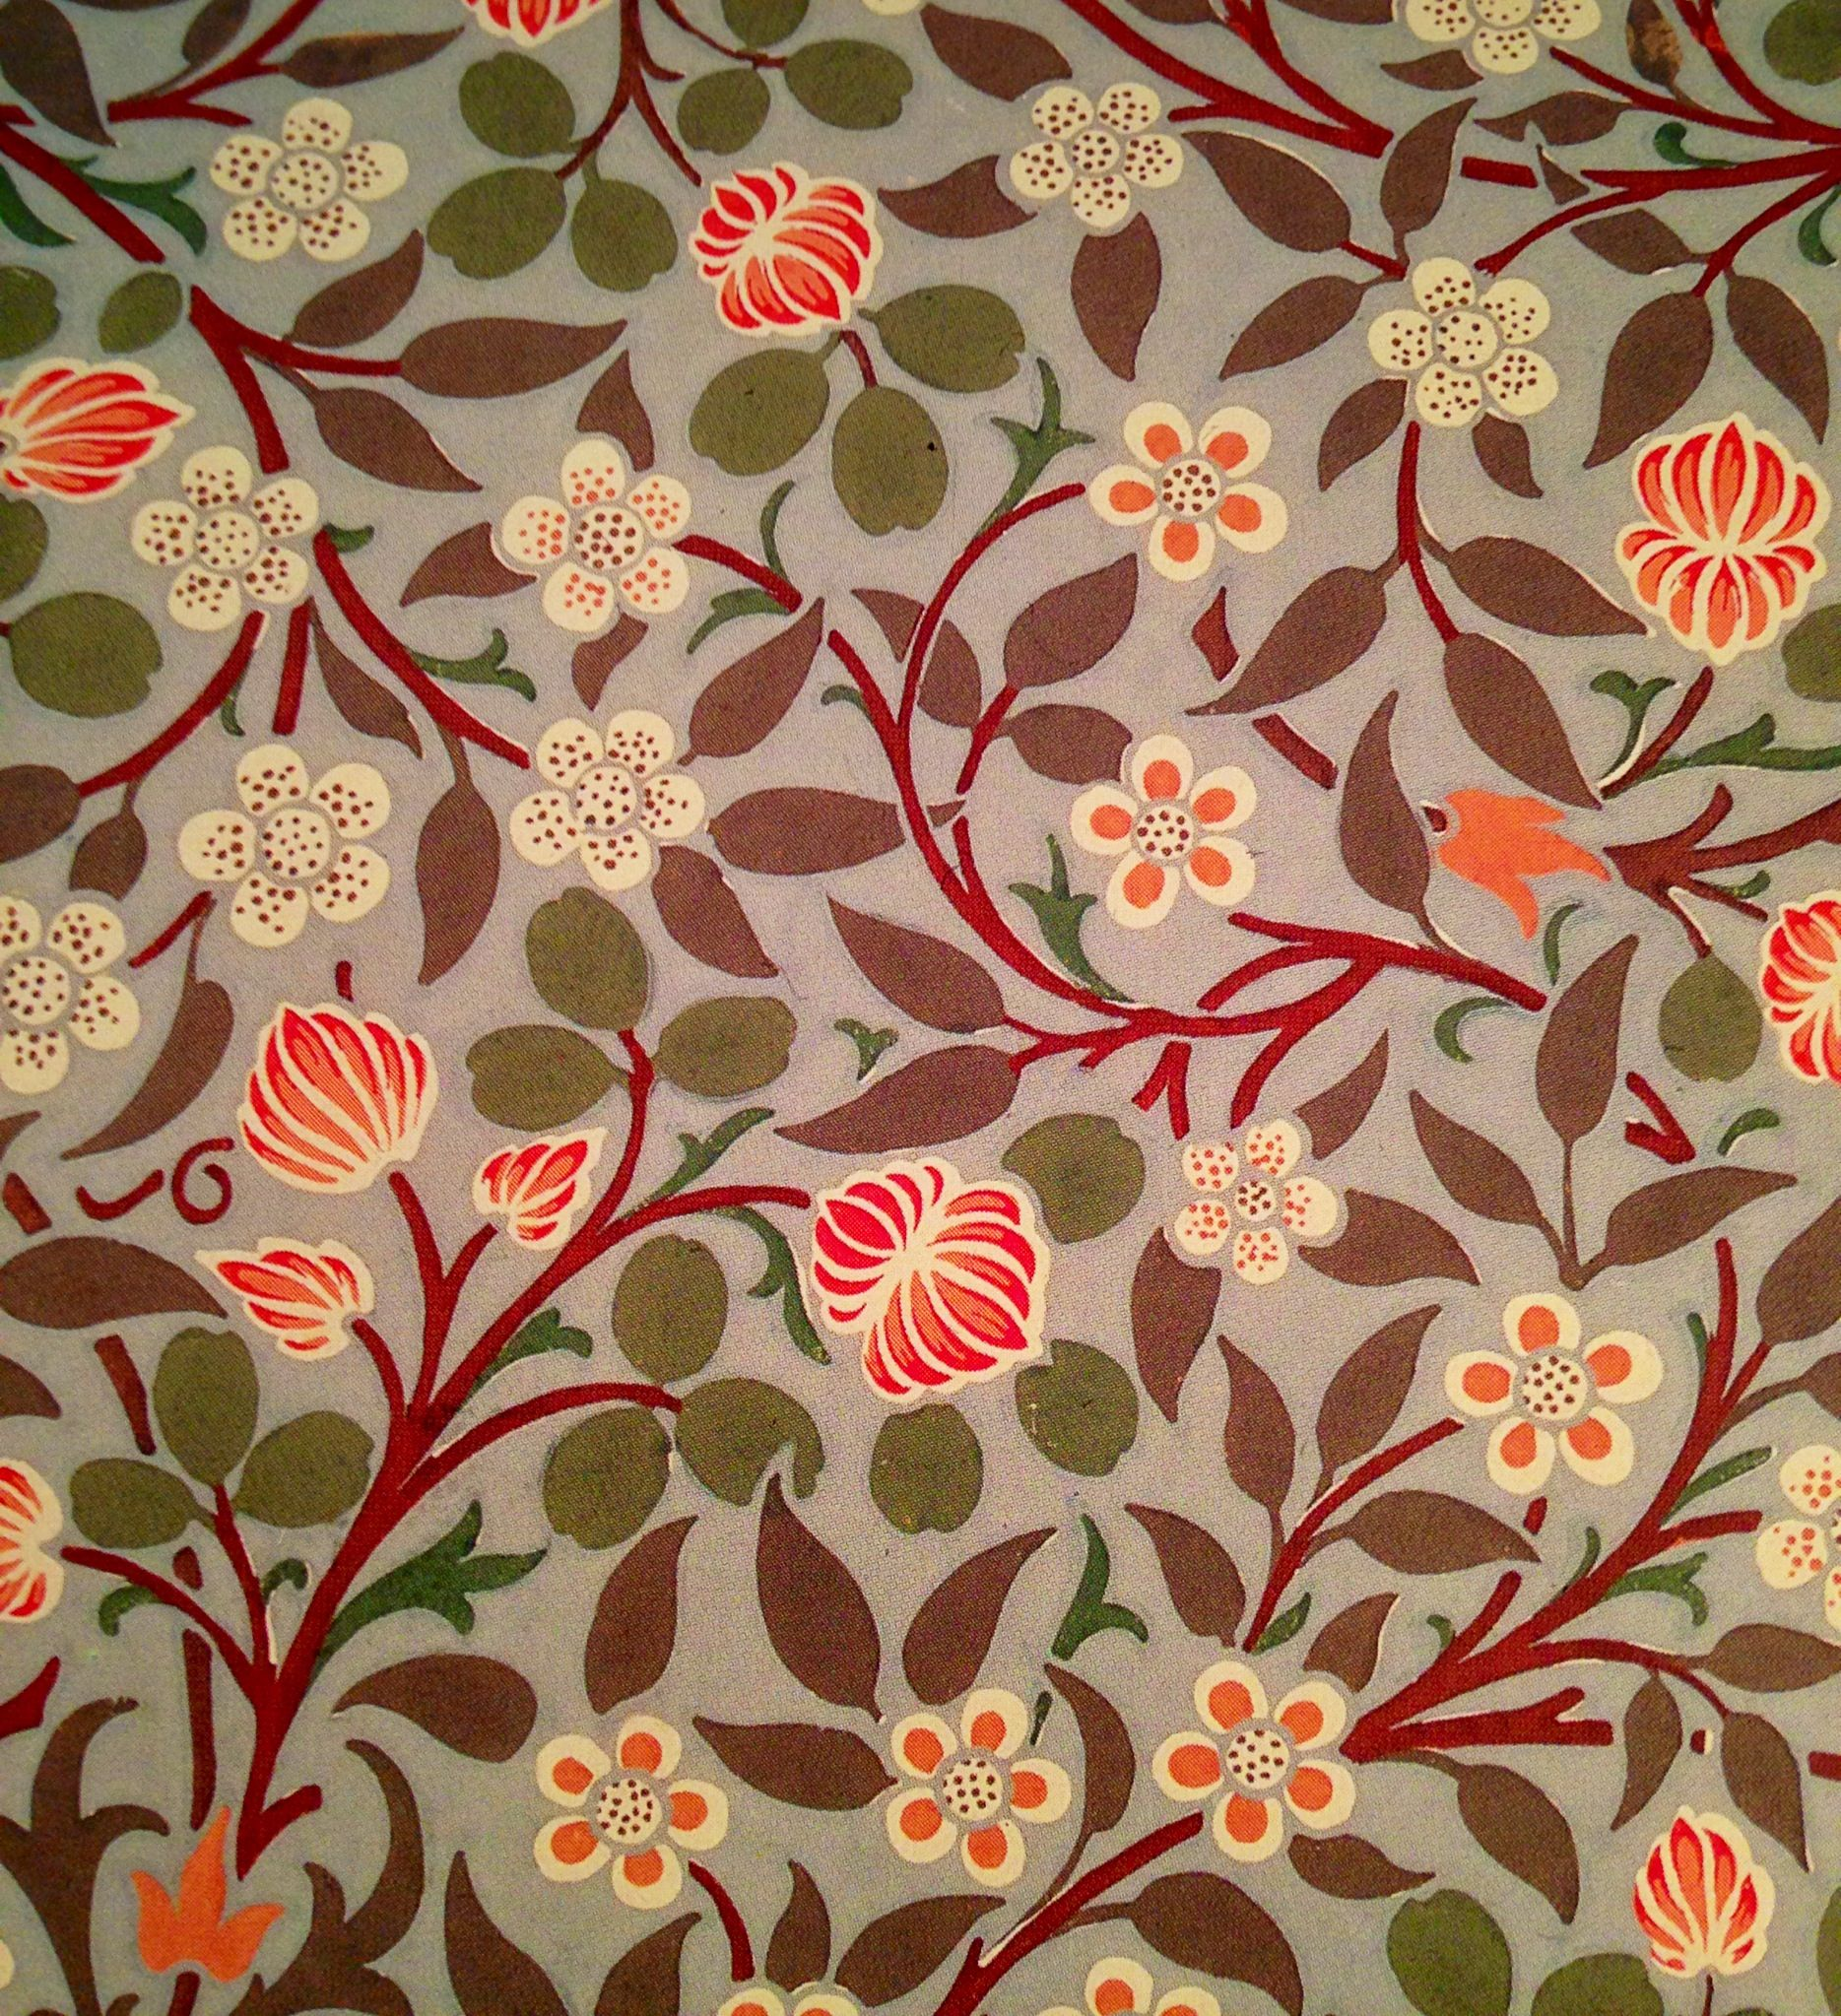 William Morris. wall paper colors flowers leaves red